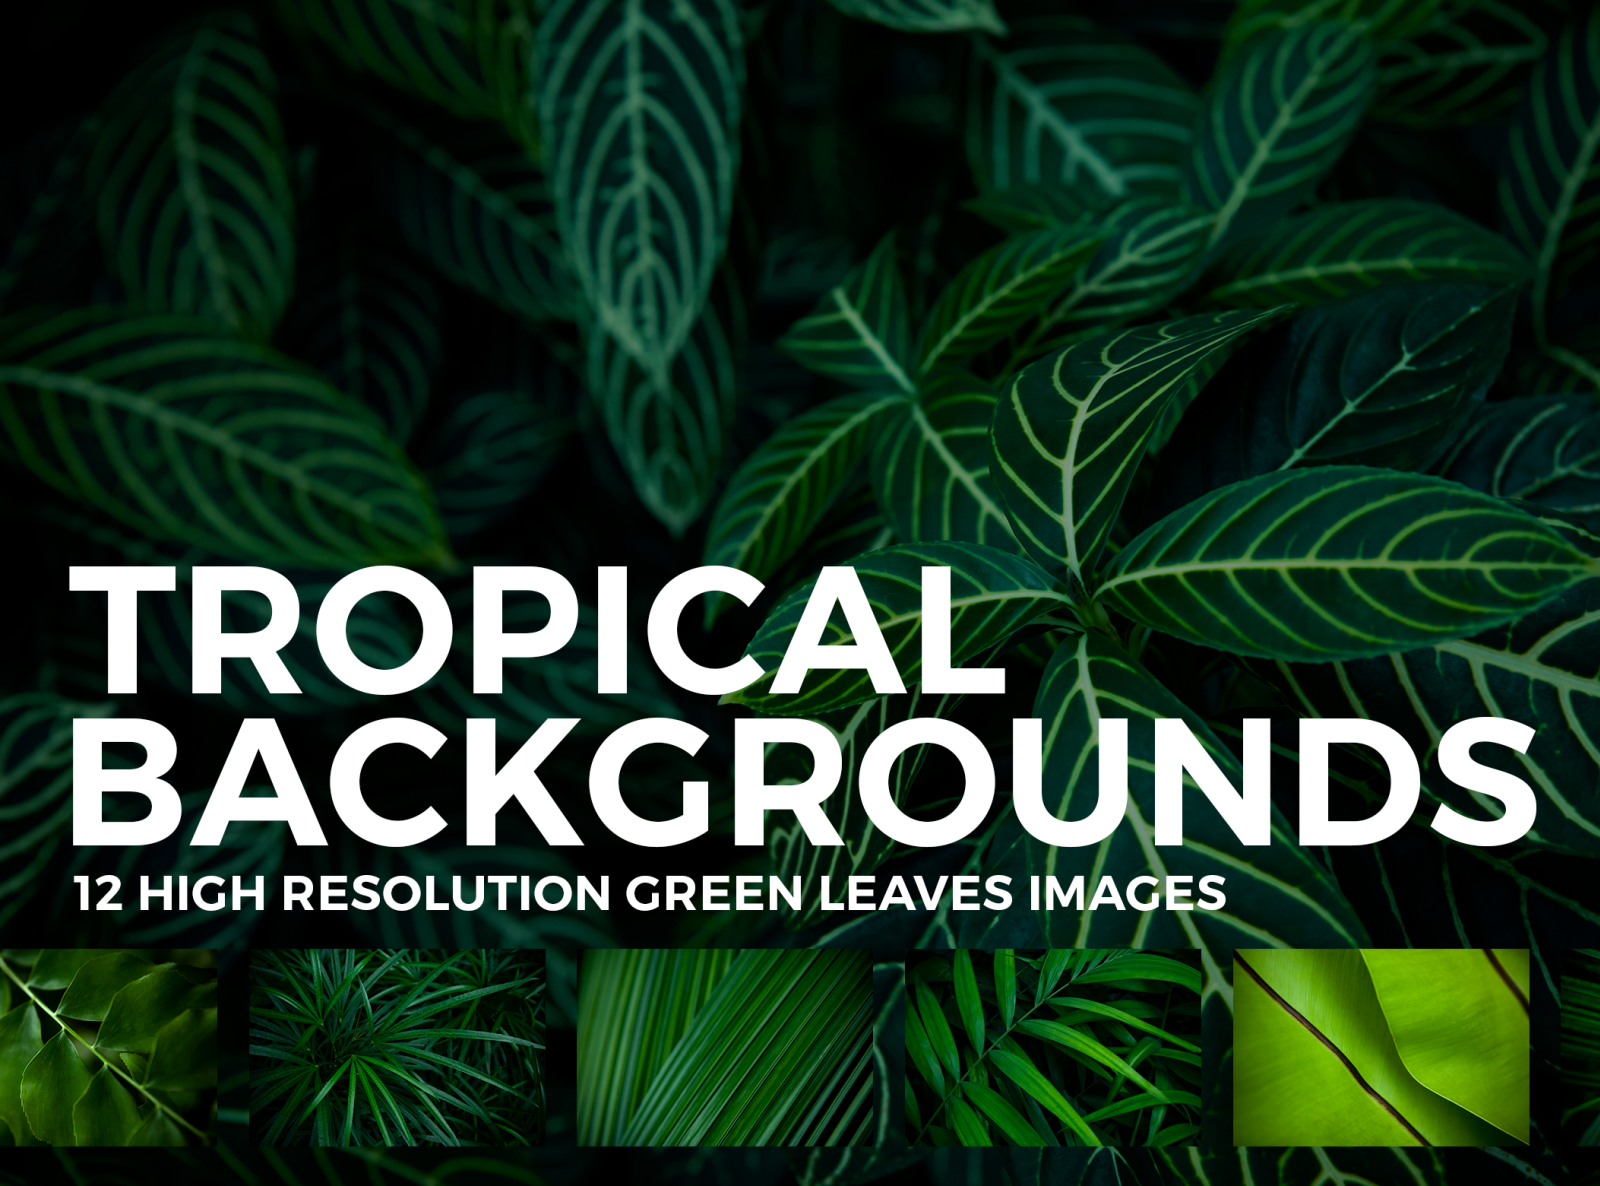 12 Tropical Leaves Backgrounds By Mint Pixels On Dribbble Tropical leaves stock photos and images. 12 tropical leaves backgrounds by mint